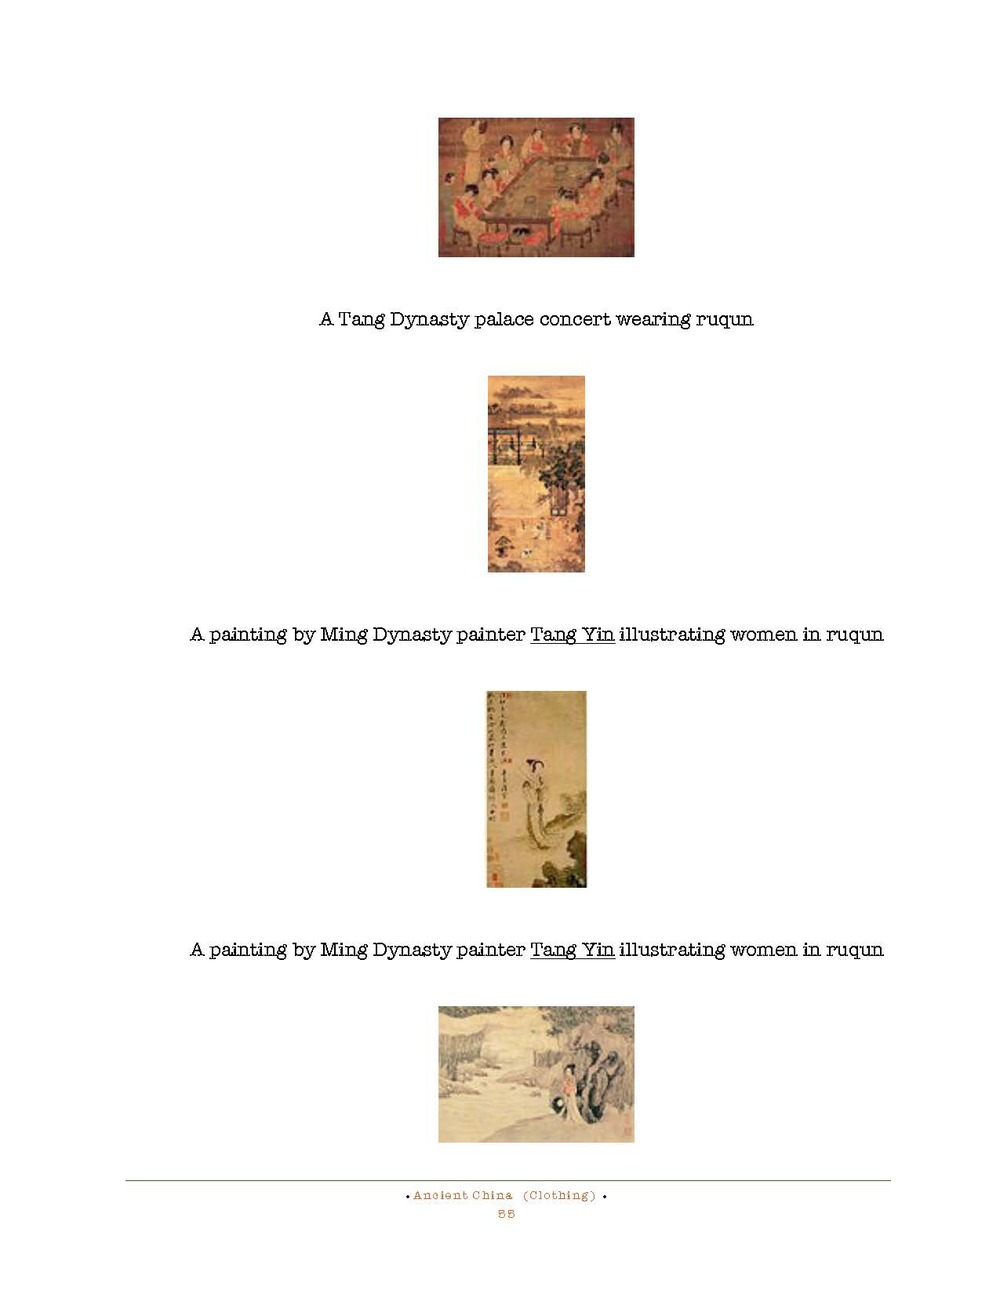 HOCE- Ancient China Notes (clothing)_Page_55.jpg